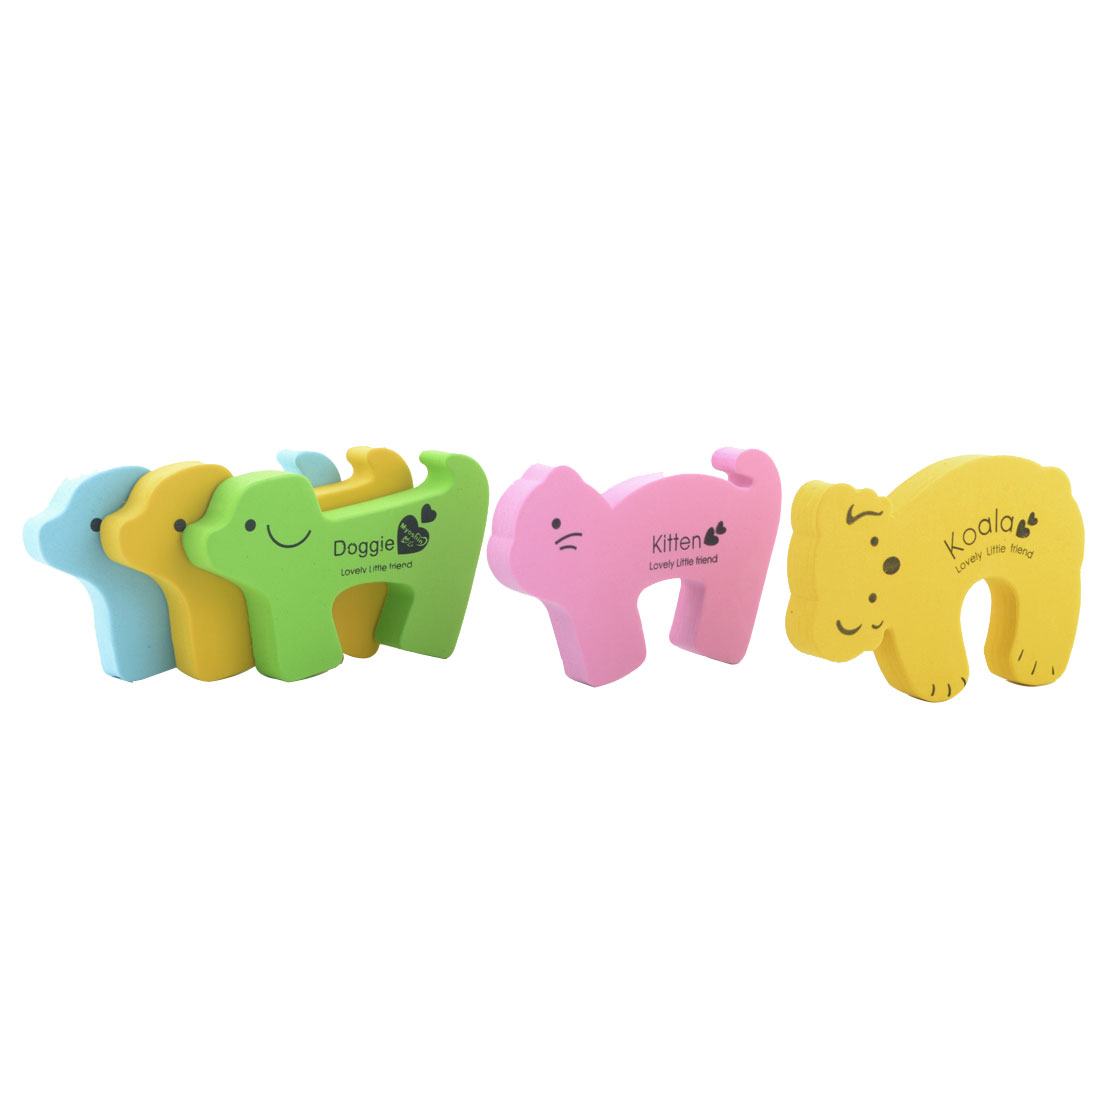 EVA Mixed Cartoon Animal Shape Safety Guard Anti Punch Door Stopper Lock Clip 5pcs